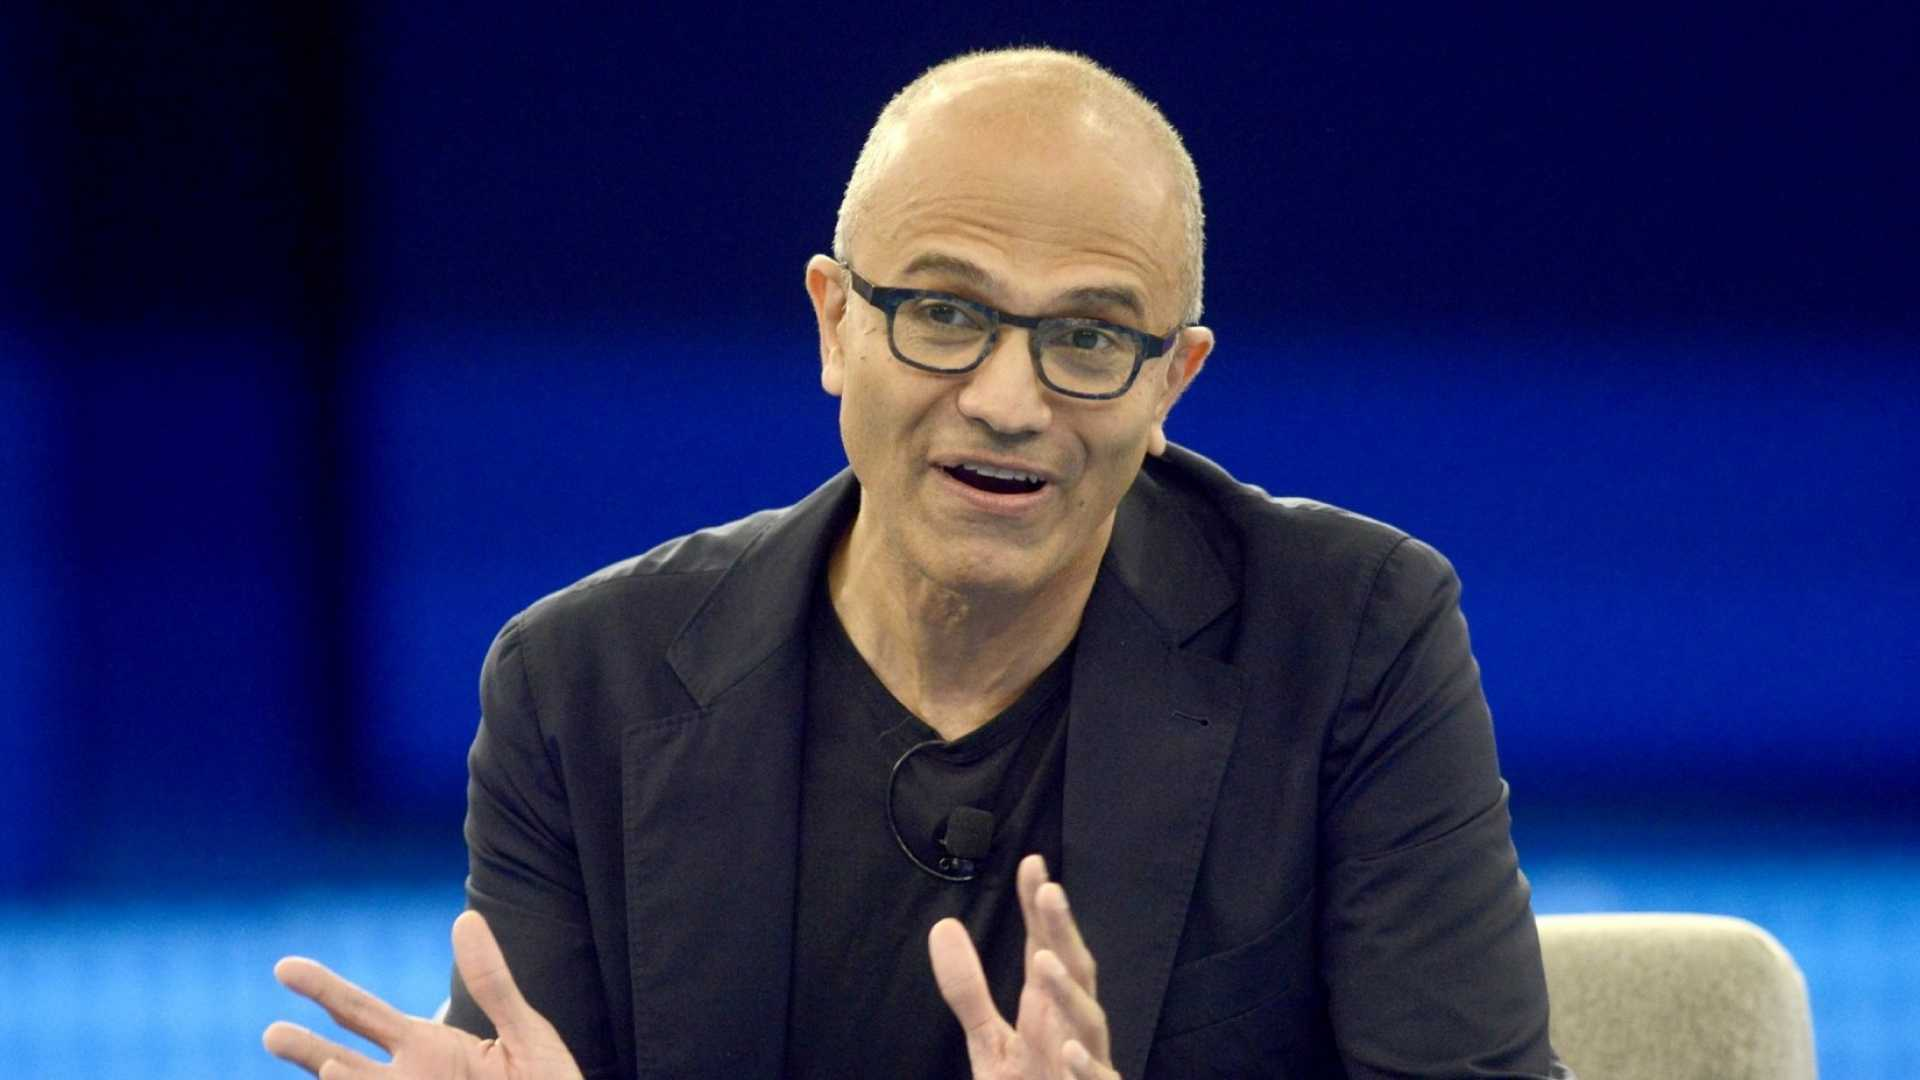 Microsoft CEO Satya Nadella Says This Quality Is Most Important for Leaders (It's Not What You Think)